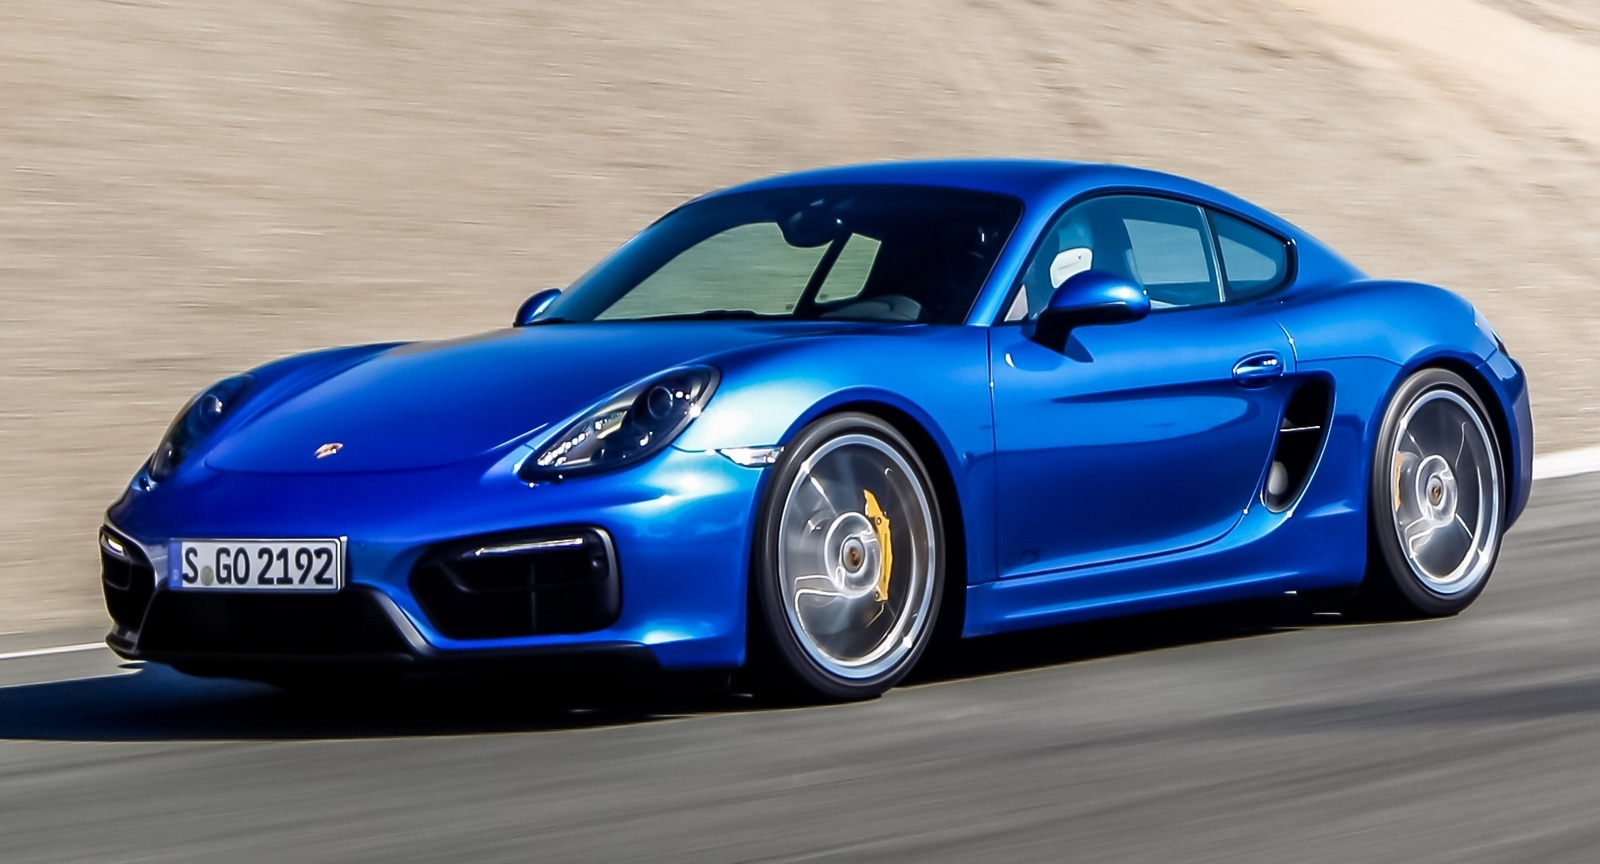 2015 Porsche Cayman Overview C24514 on hyundai genesis trims